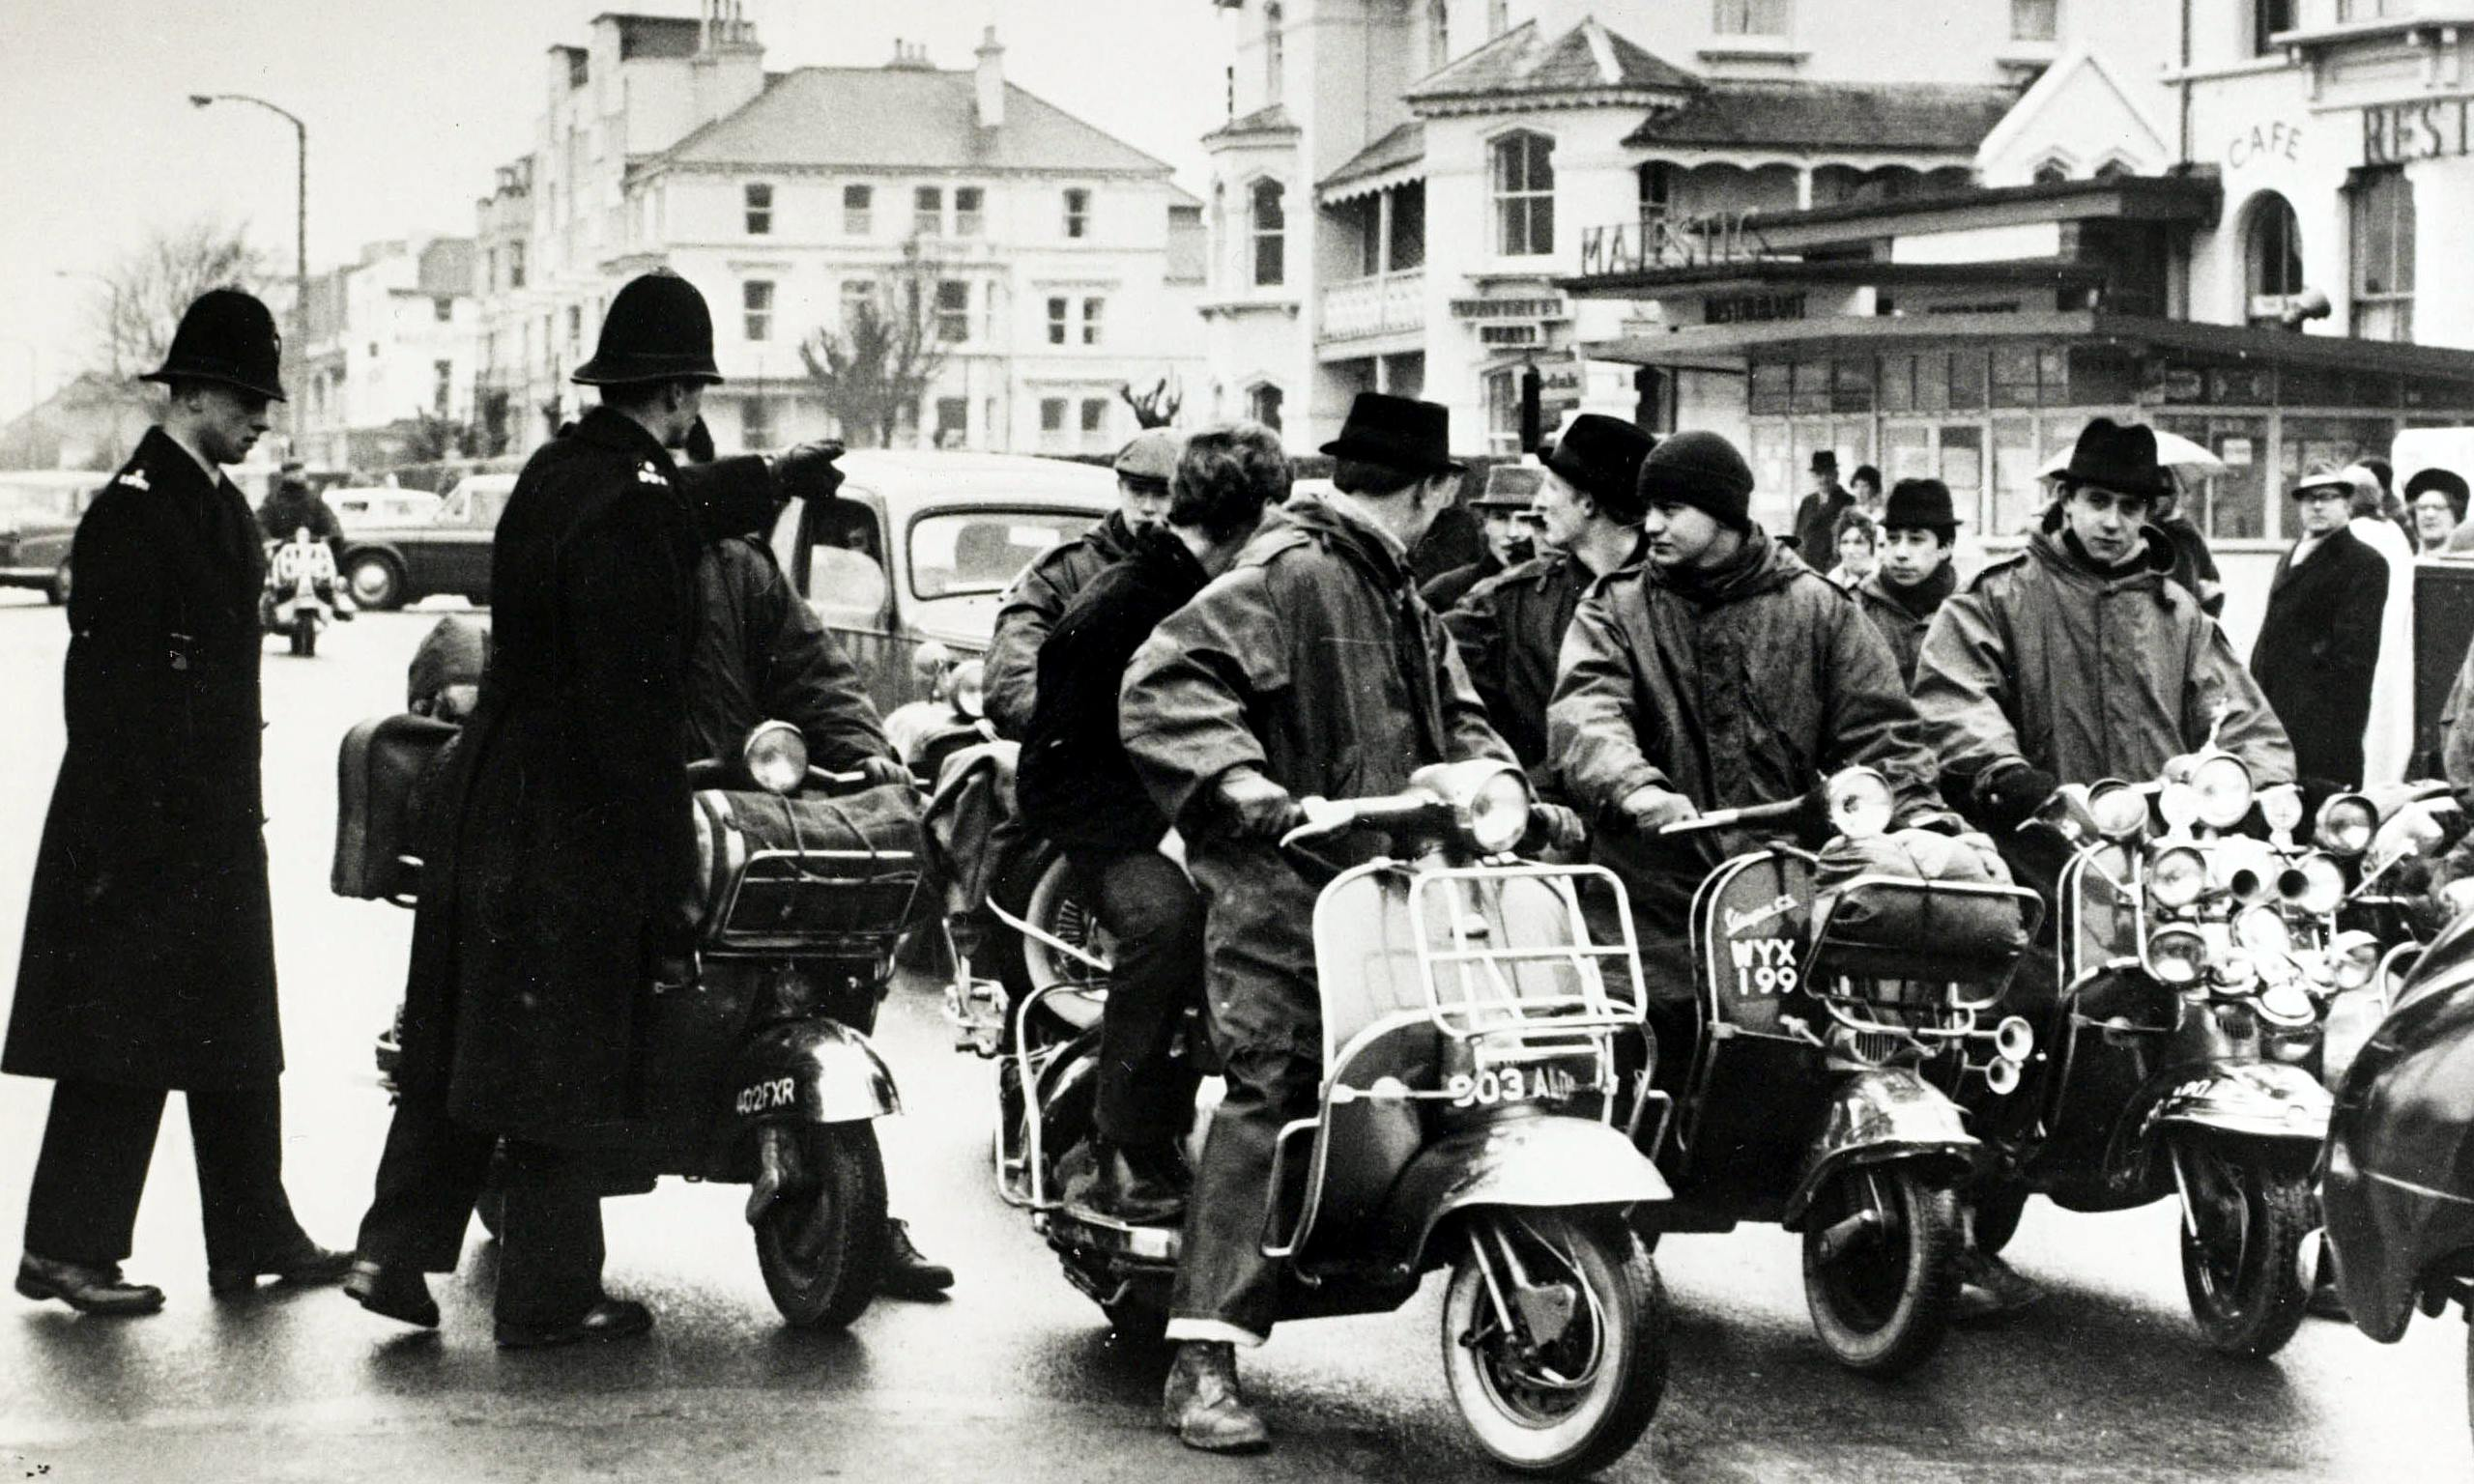 Police warn a group of mods arriving in Clacton, Essex, in 1964. Photograph: Popperfoto